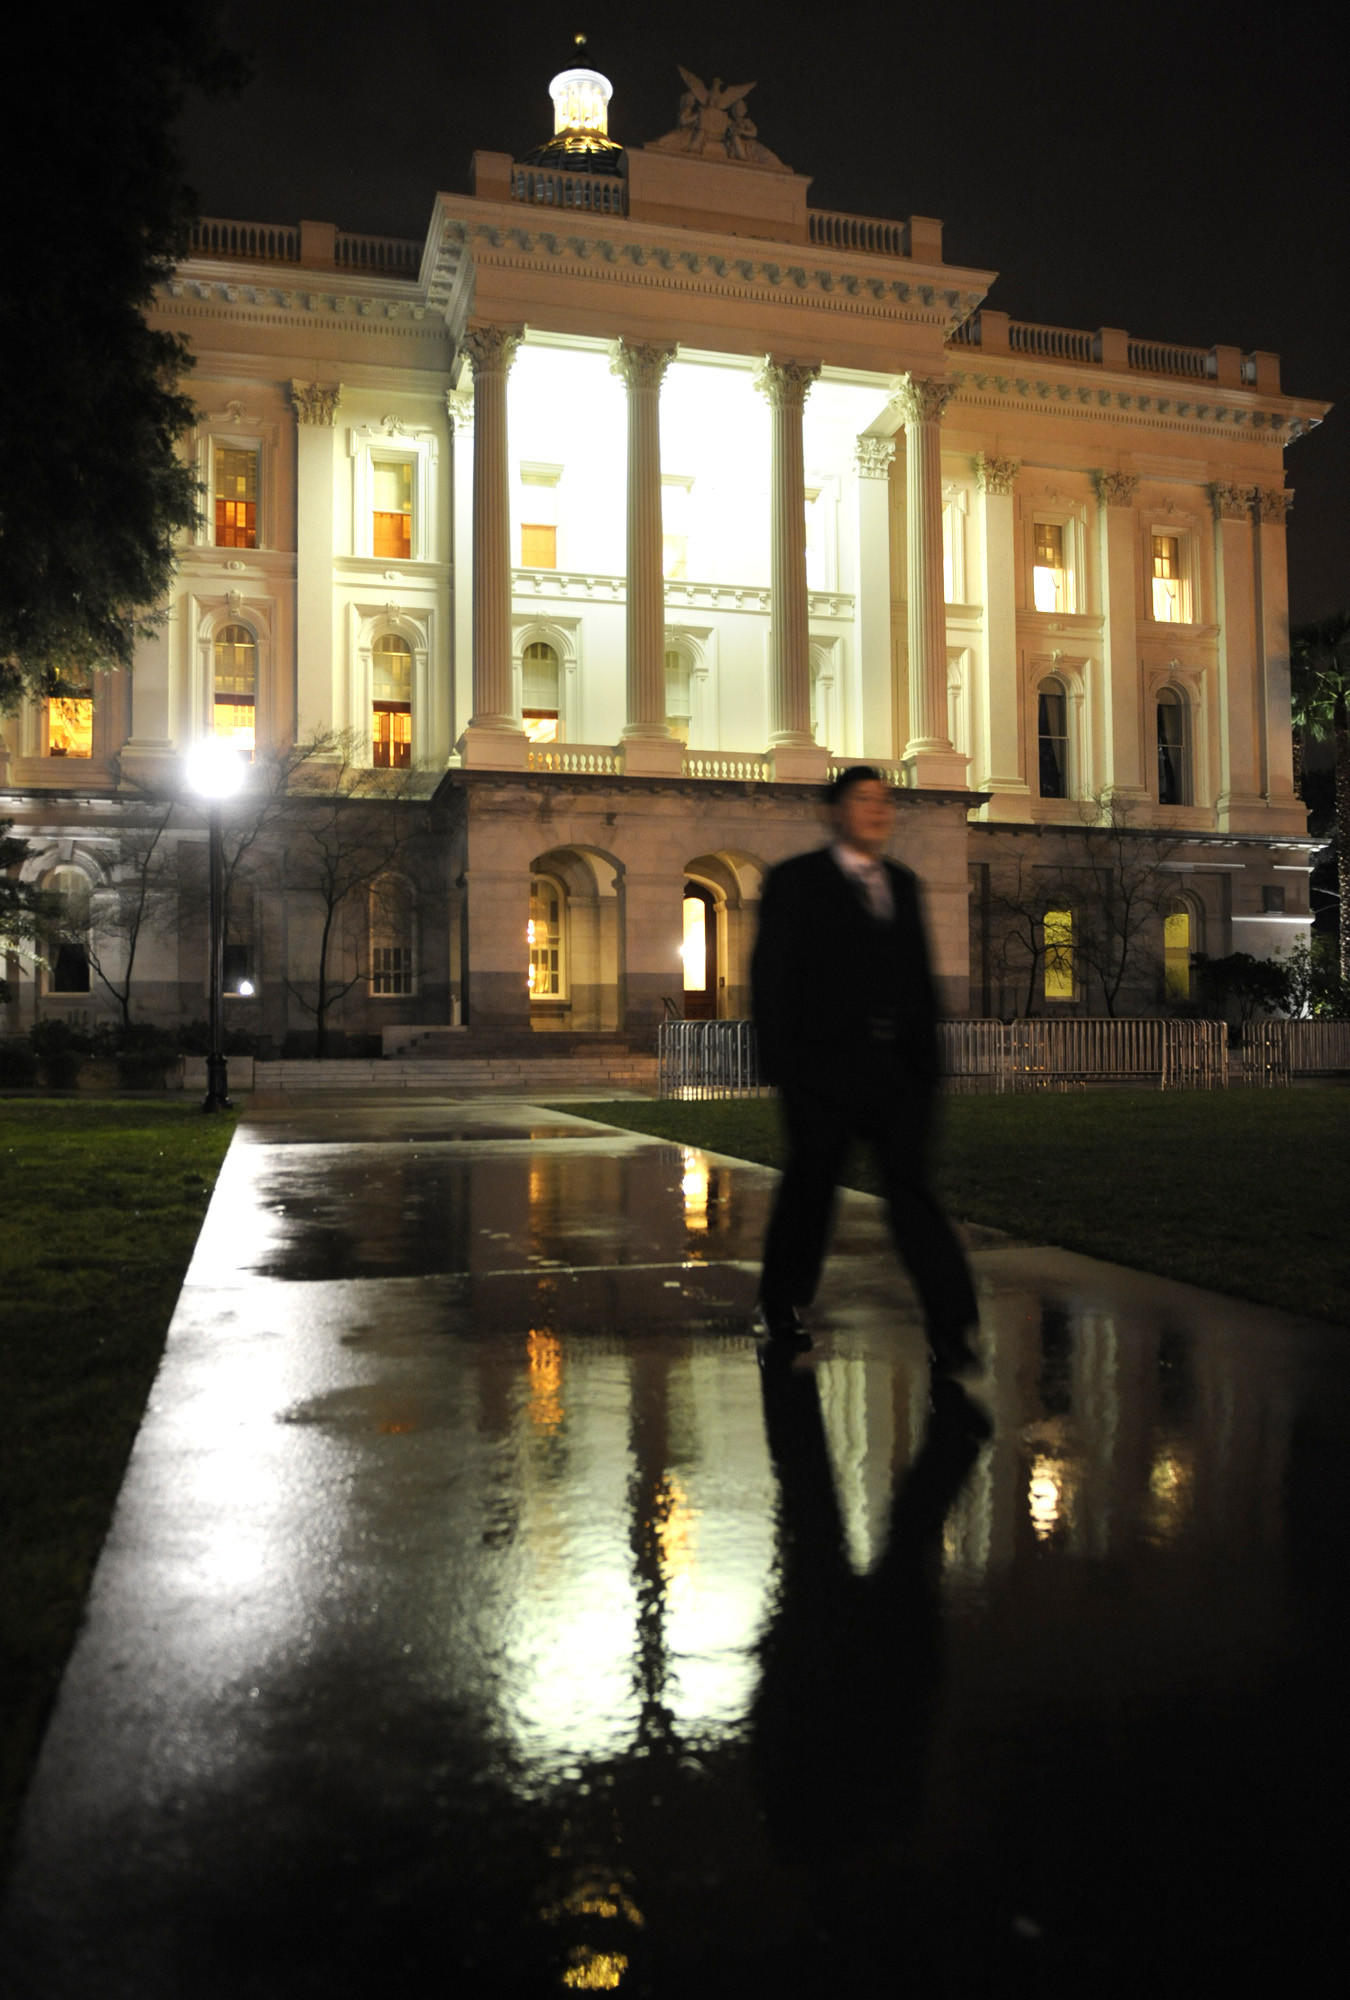 A pedestrian walks out of the State Capitol building in Sacramento. Last month, the Democrats lost their supermajority in the Senate when they were hit with the double-whammy departures of Sen. Roderick Wright of Inglewood, who took a paid leave of absence following his conviction on perjury and voter fraud charges, and Sen. Ronald Calderon of Montebello, who also took a paid leave after he was indicted on federal bribery and corruption charges.